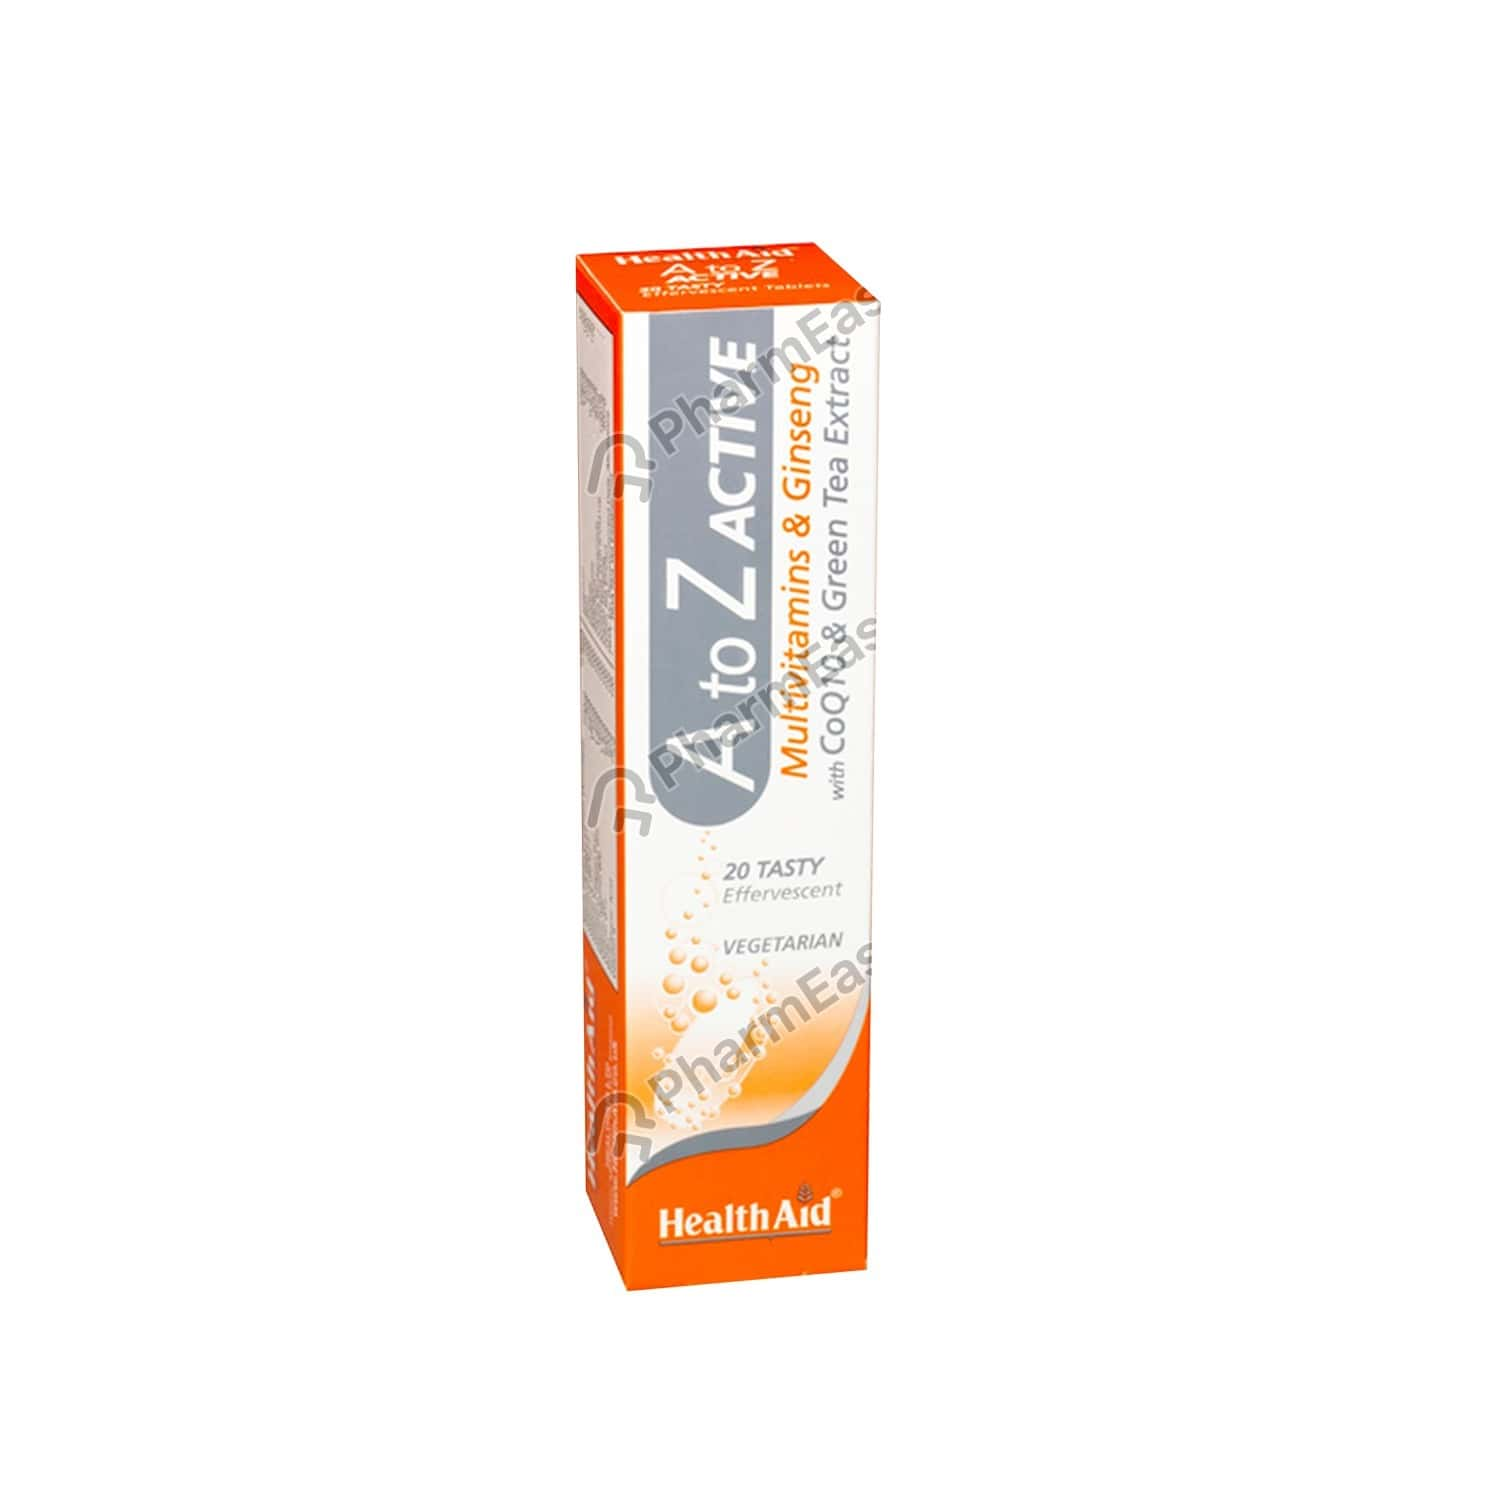 Health Aid A To Z Active Multivit Efferv